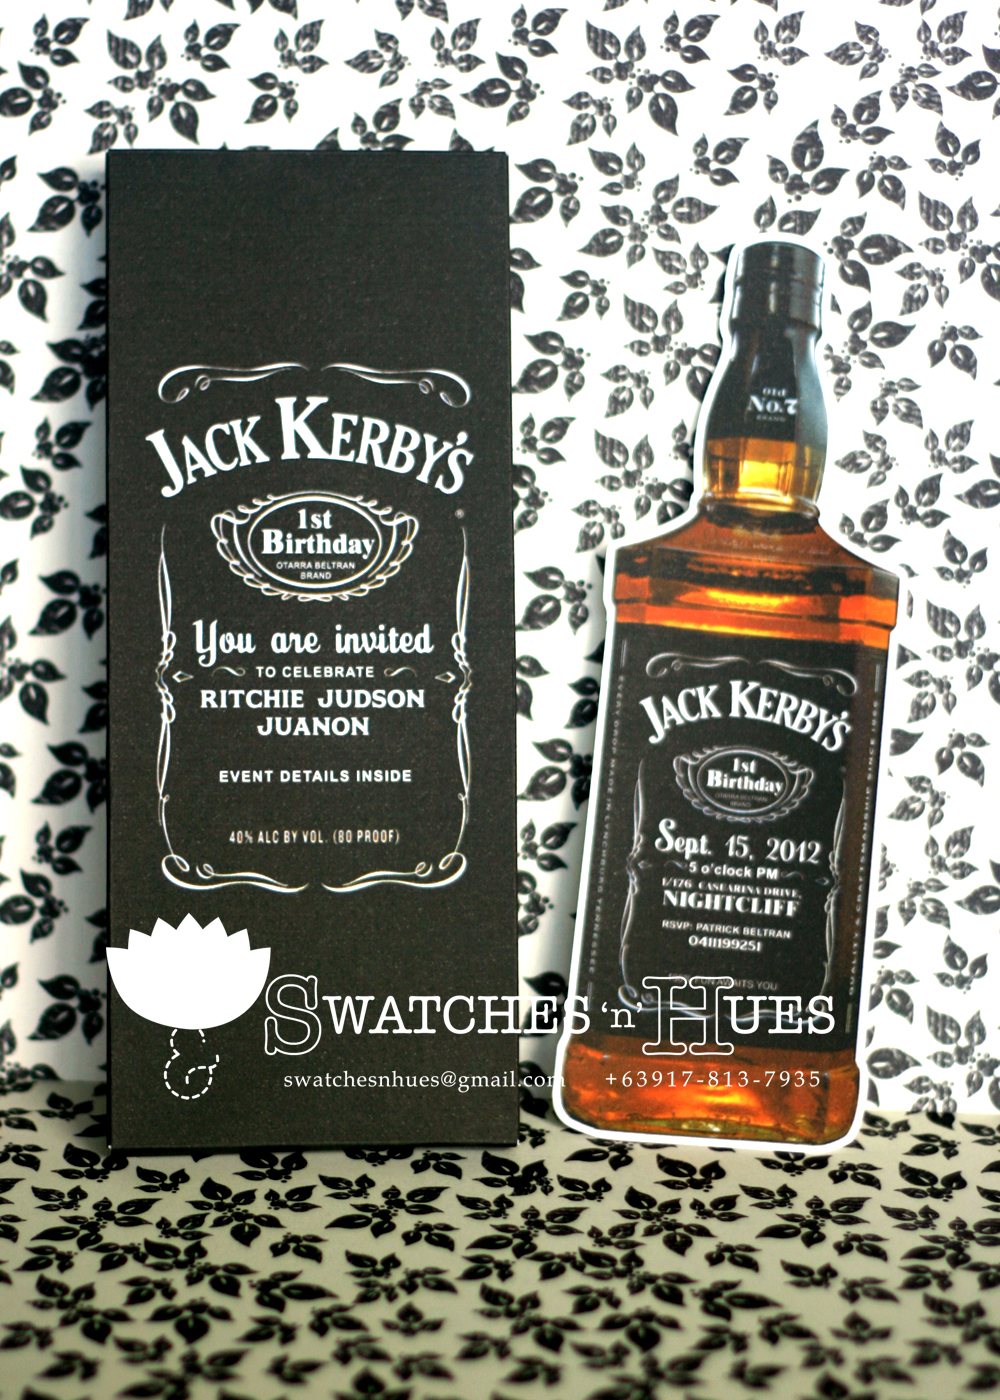 Swatches Hues Handmade with TLC Jack Daniels themed party